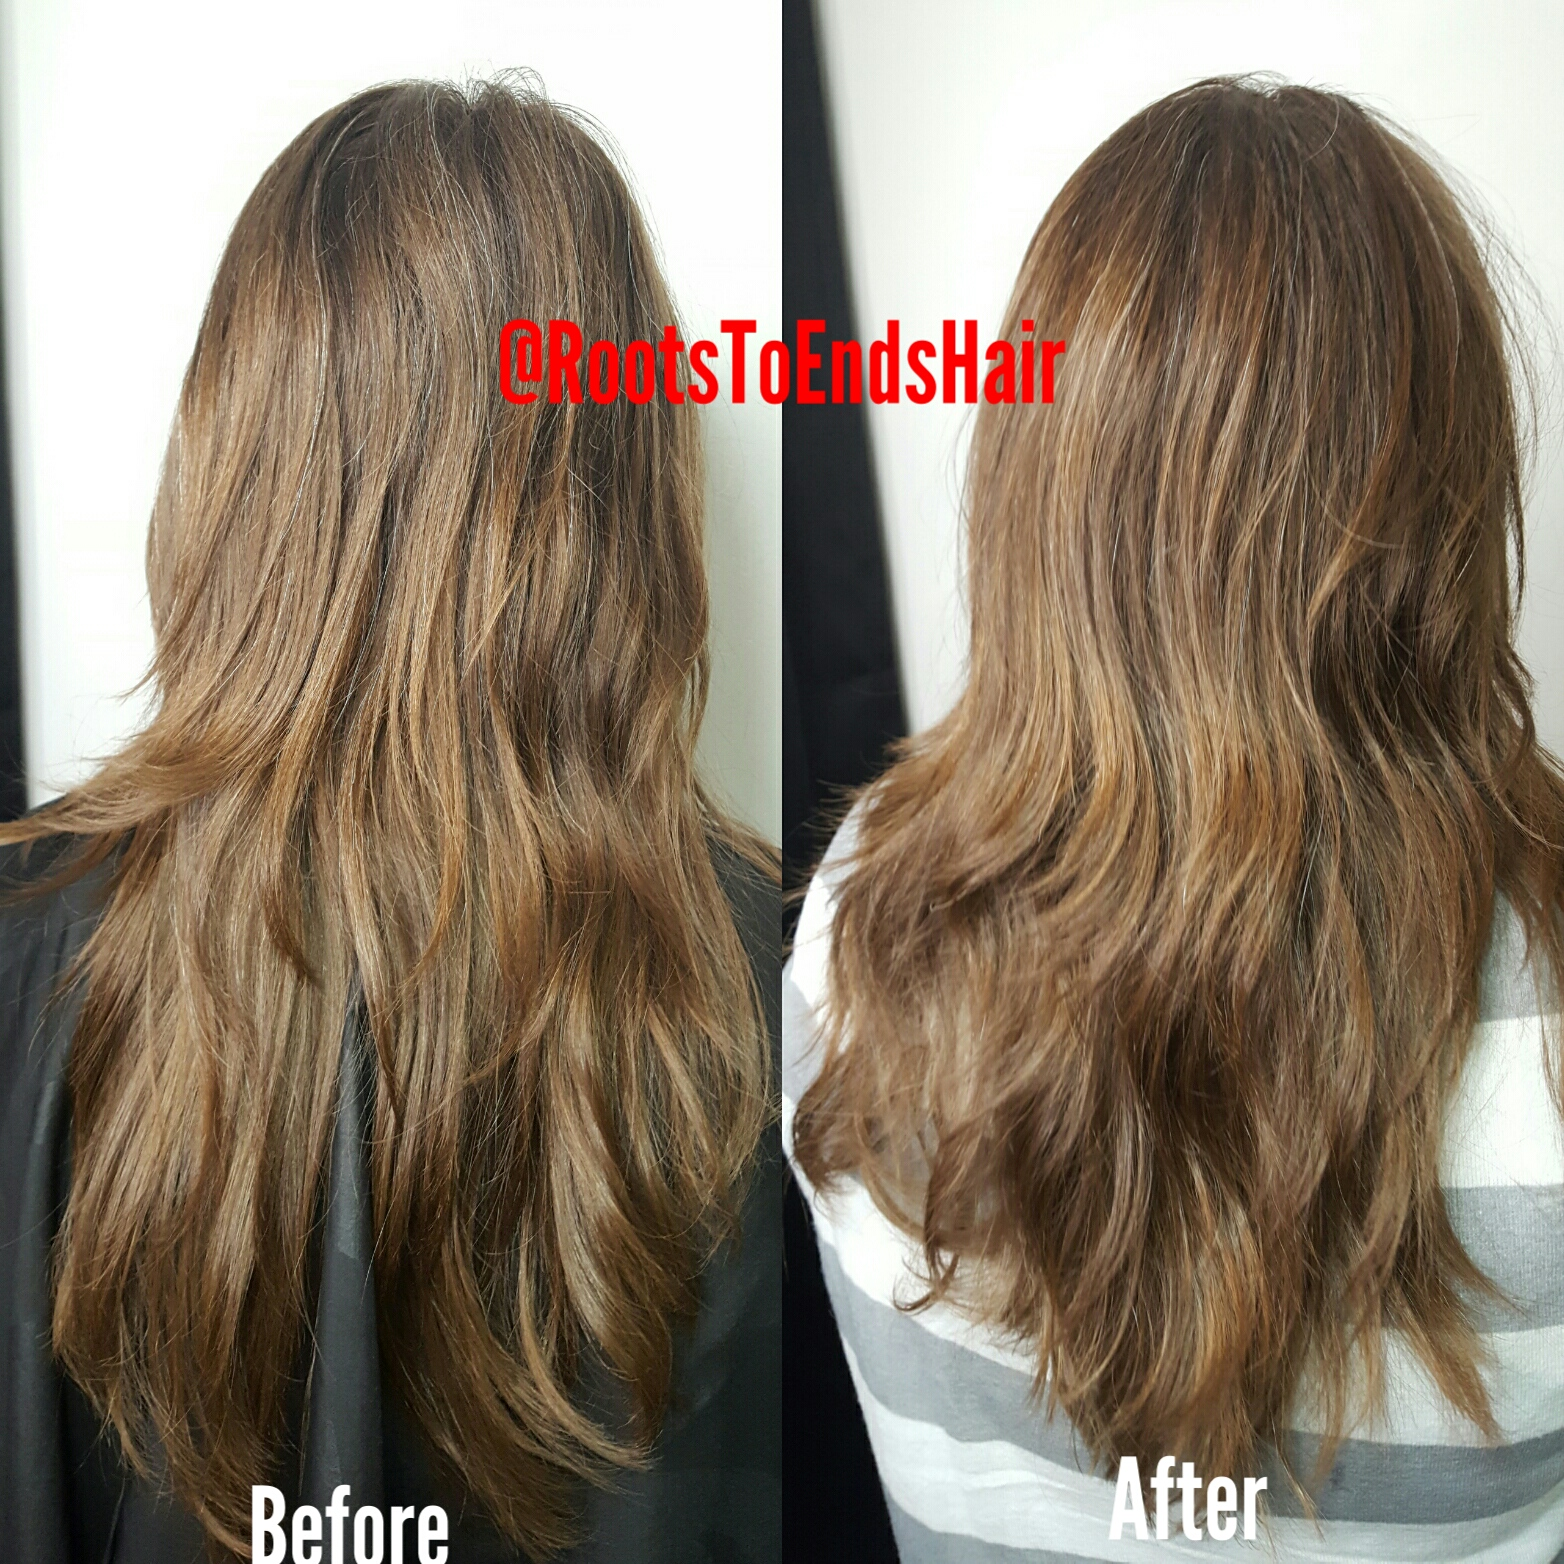 Cut with the natural waves.